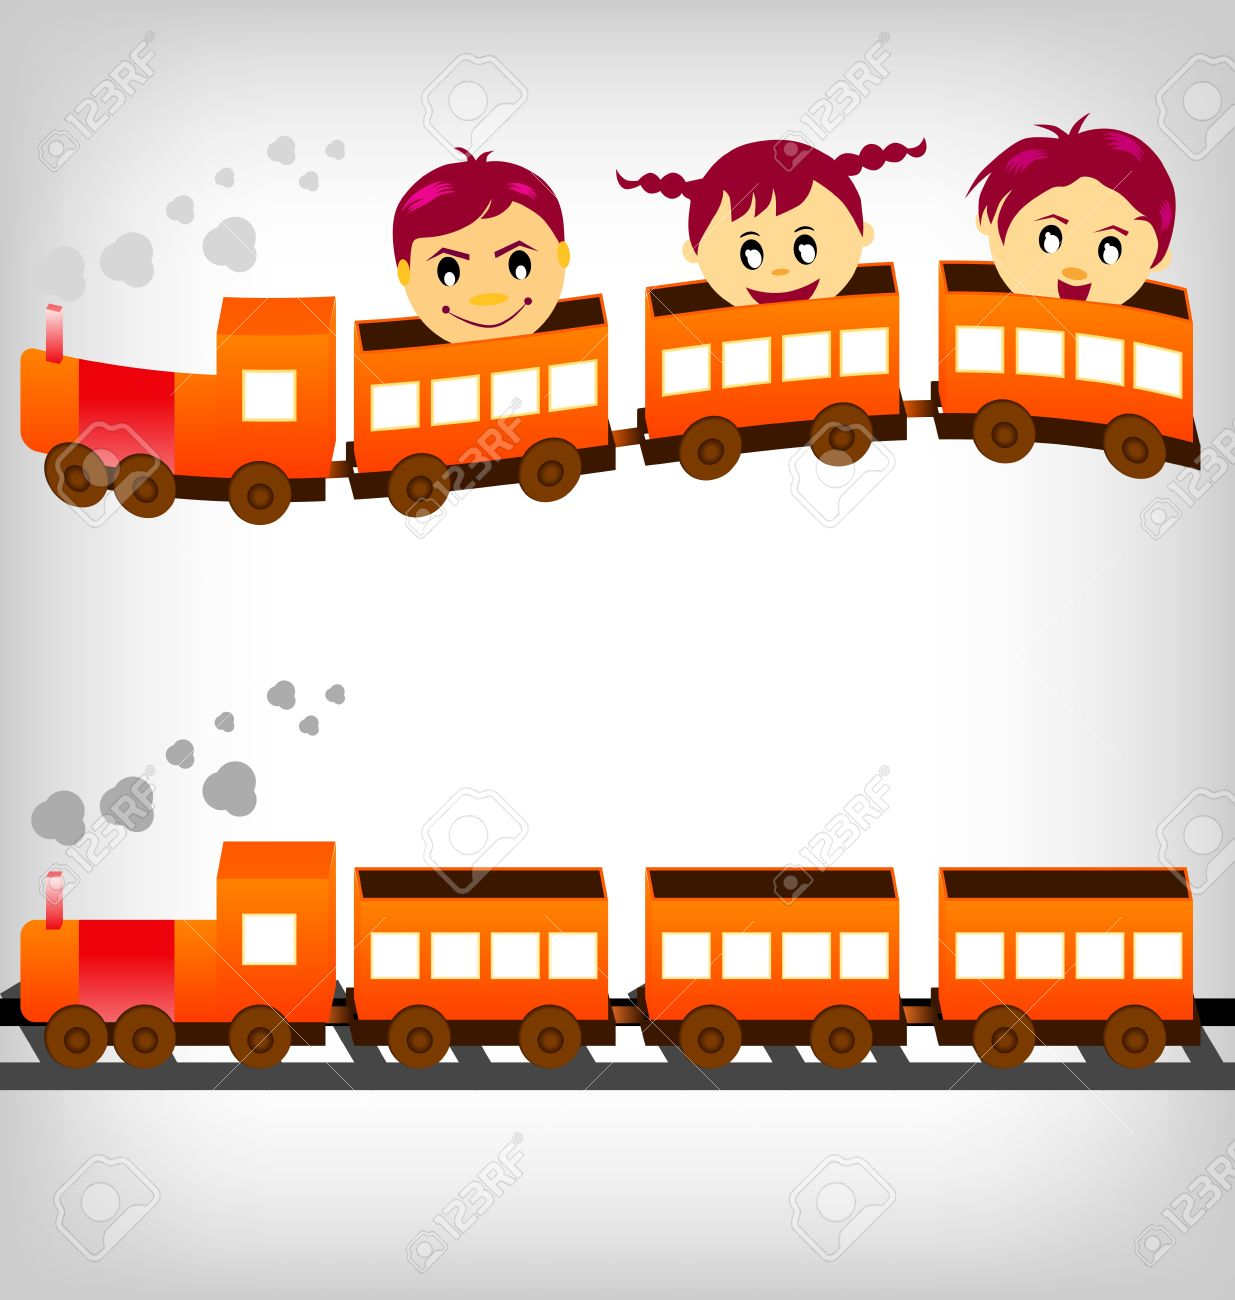 Group Of Children Having Fun Riding In A Train. Royalty Free.